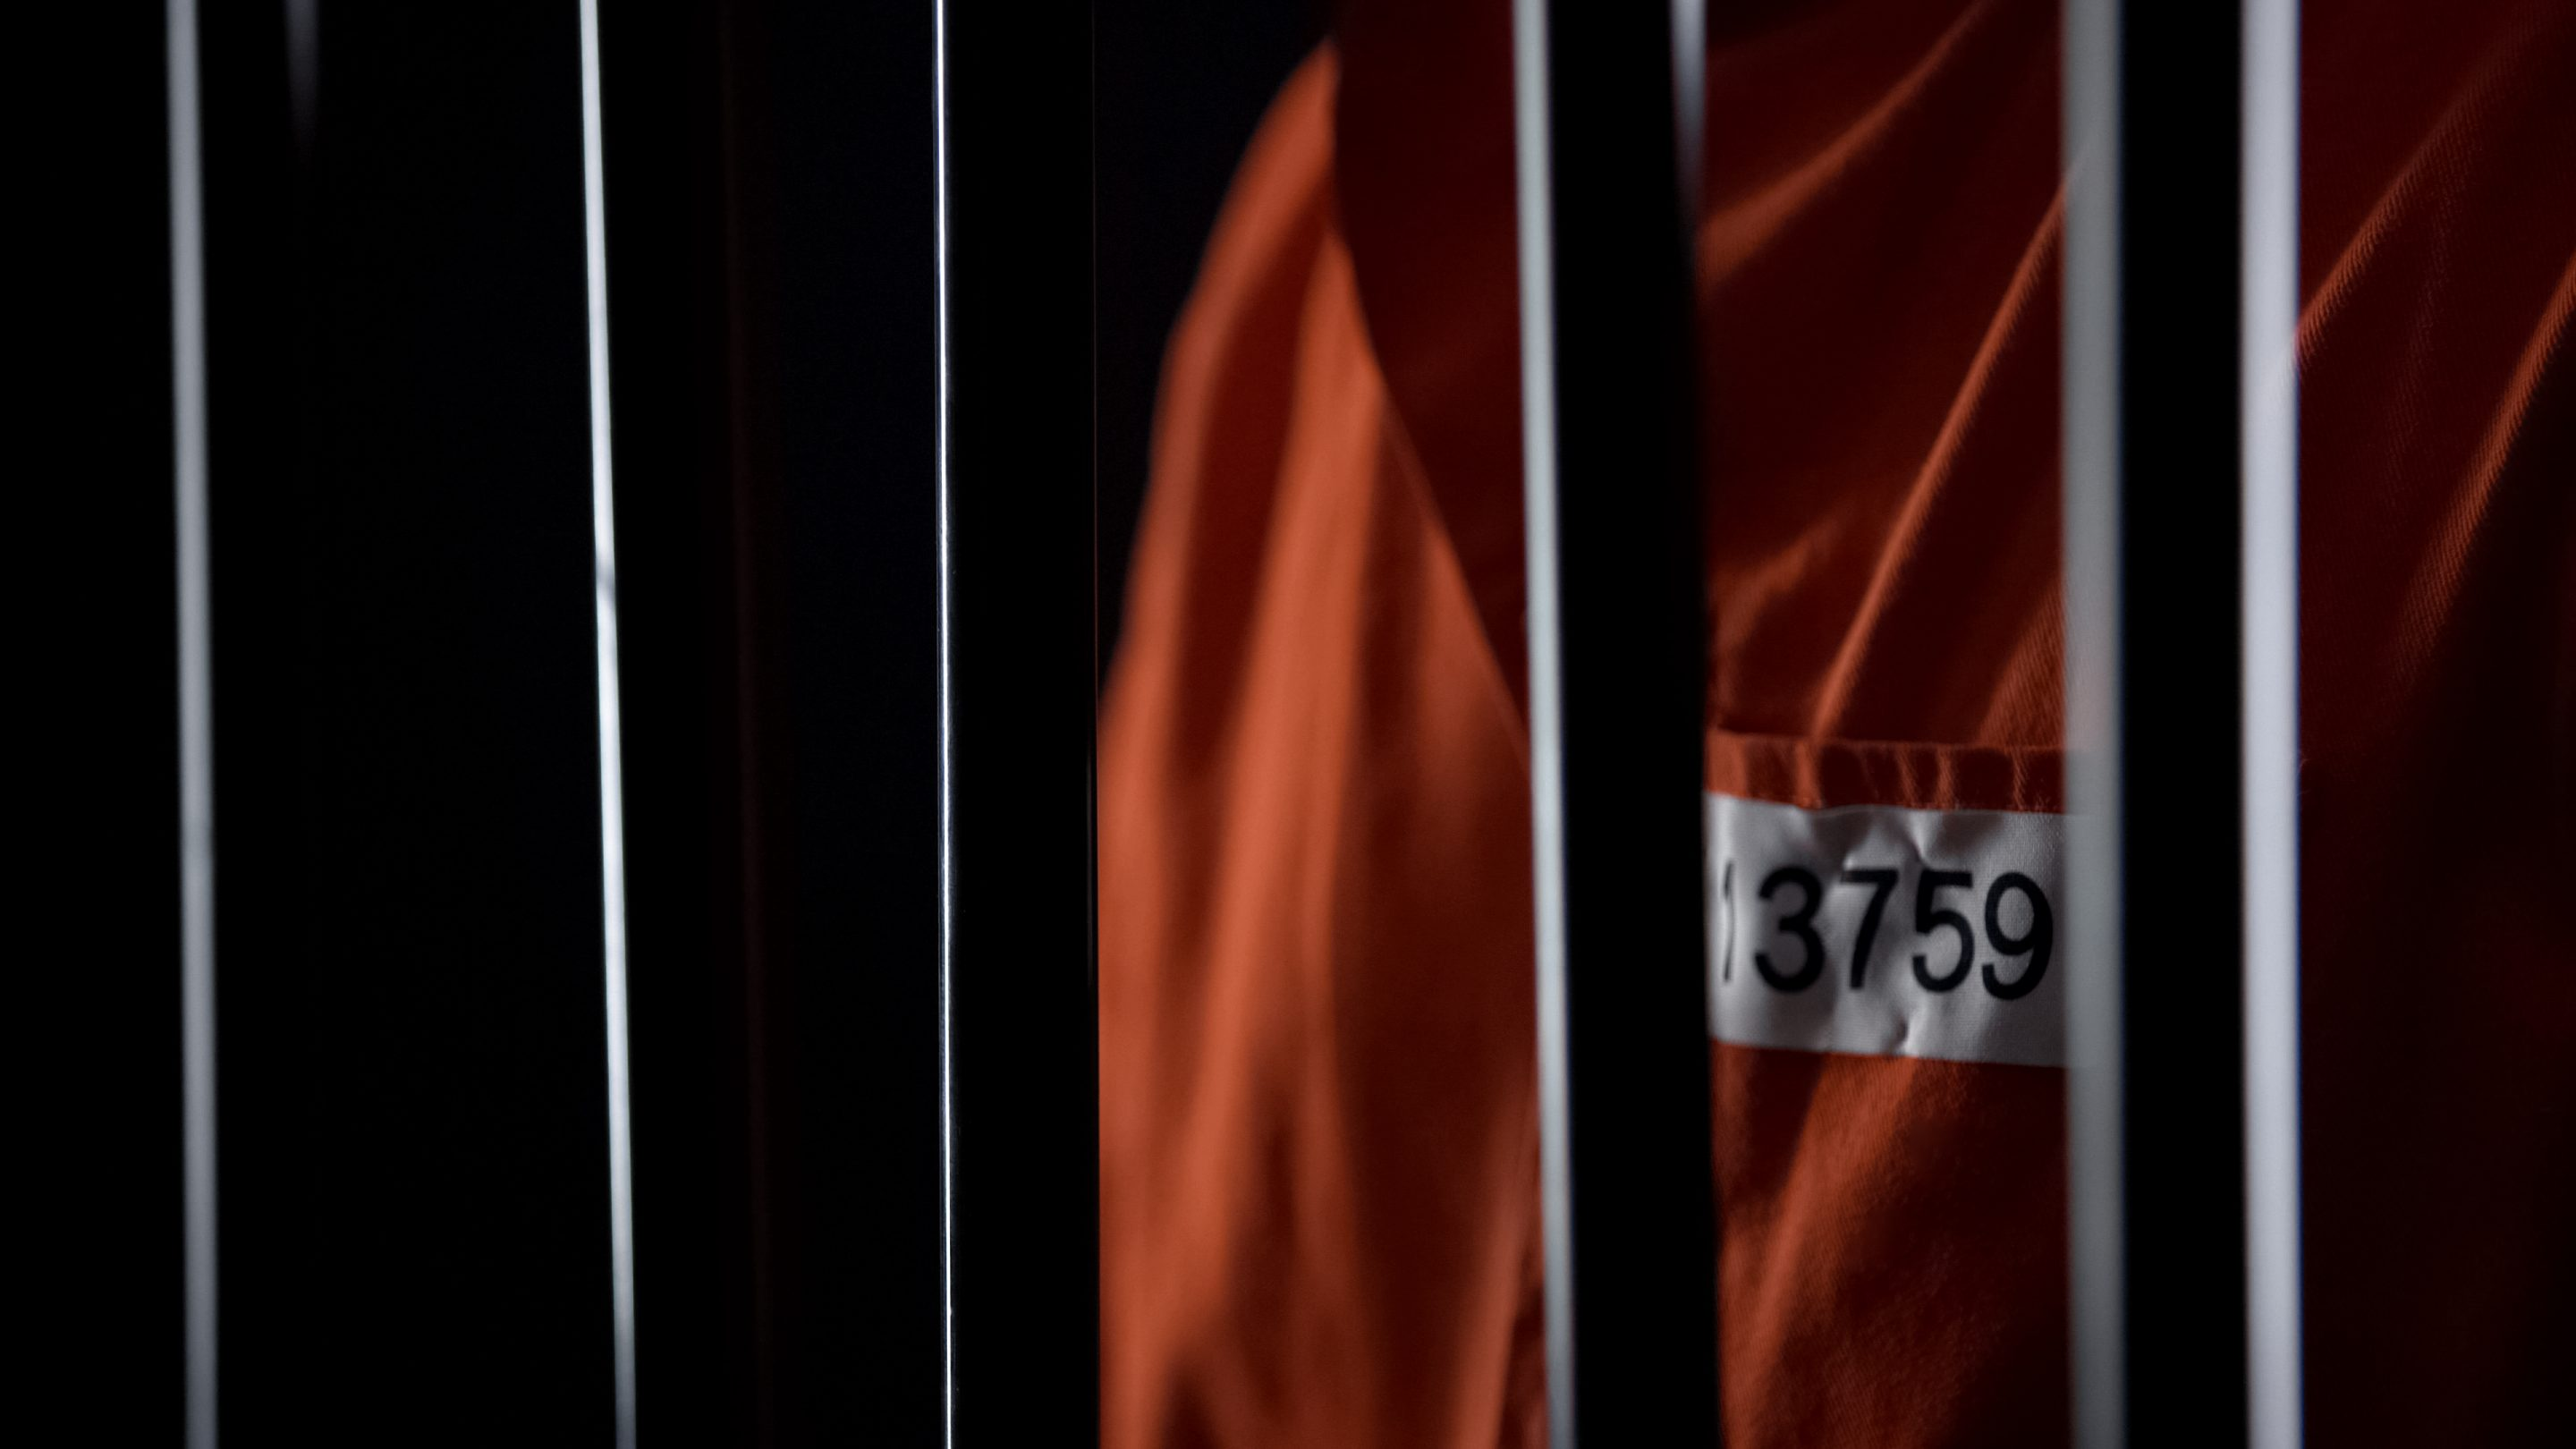 Prisoner in orange uniform standing behind bars